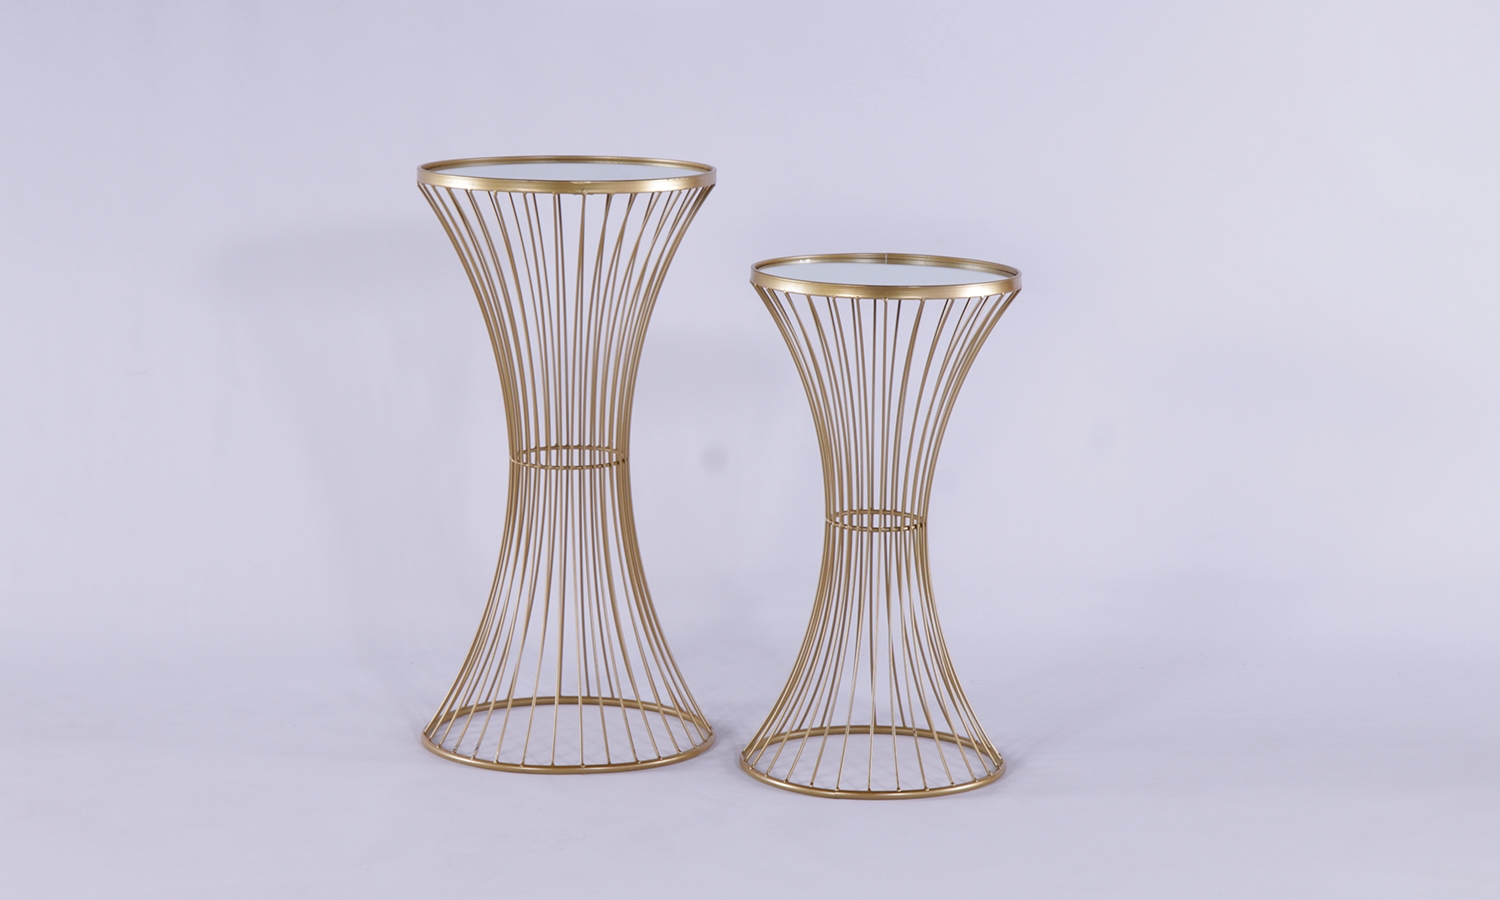 Urban Deco Gold Metal In Mirror Top Set of 2 Side Tables